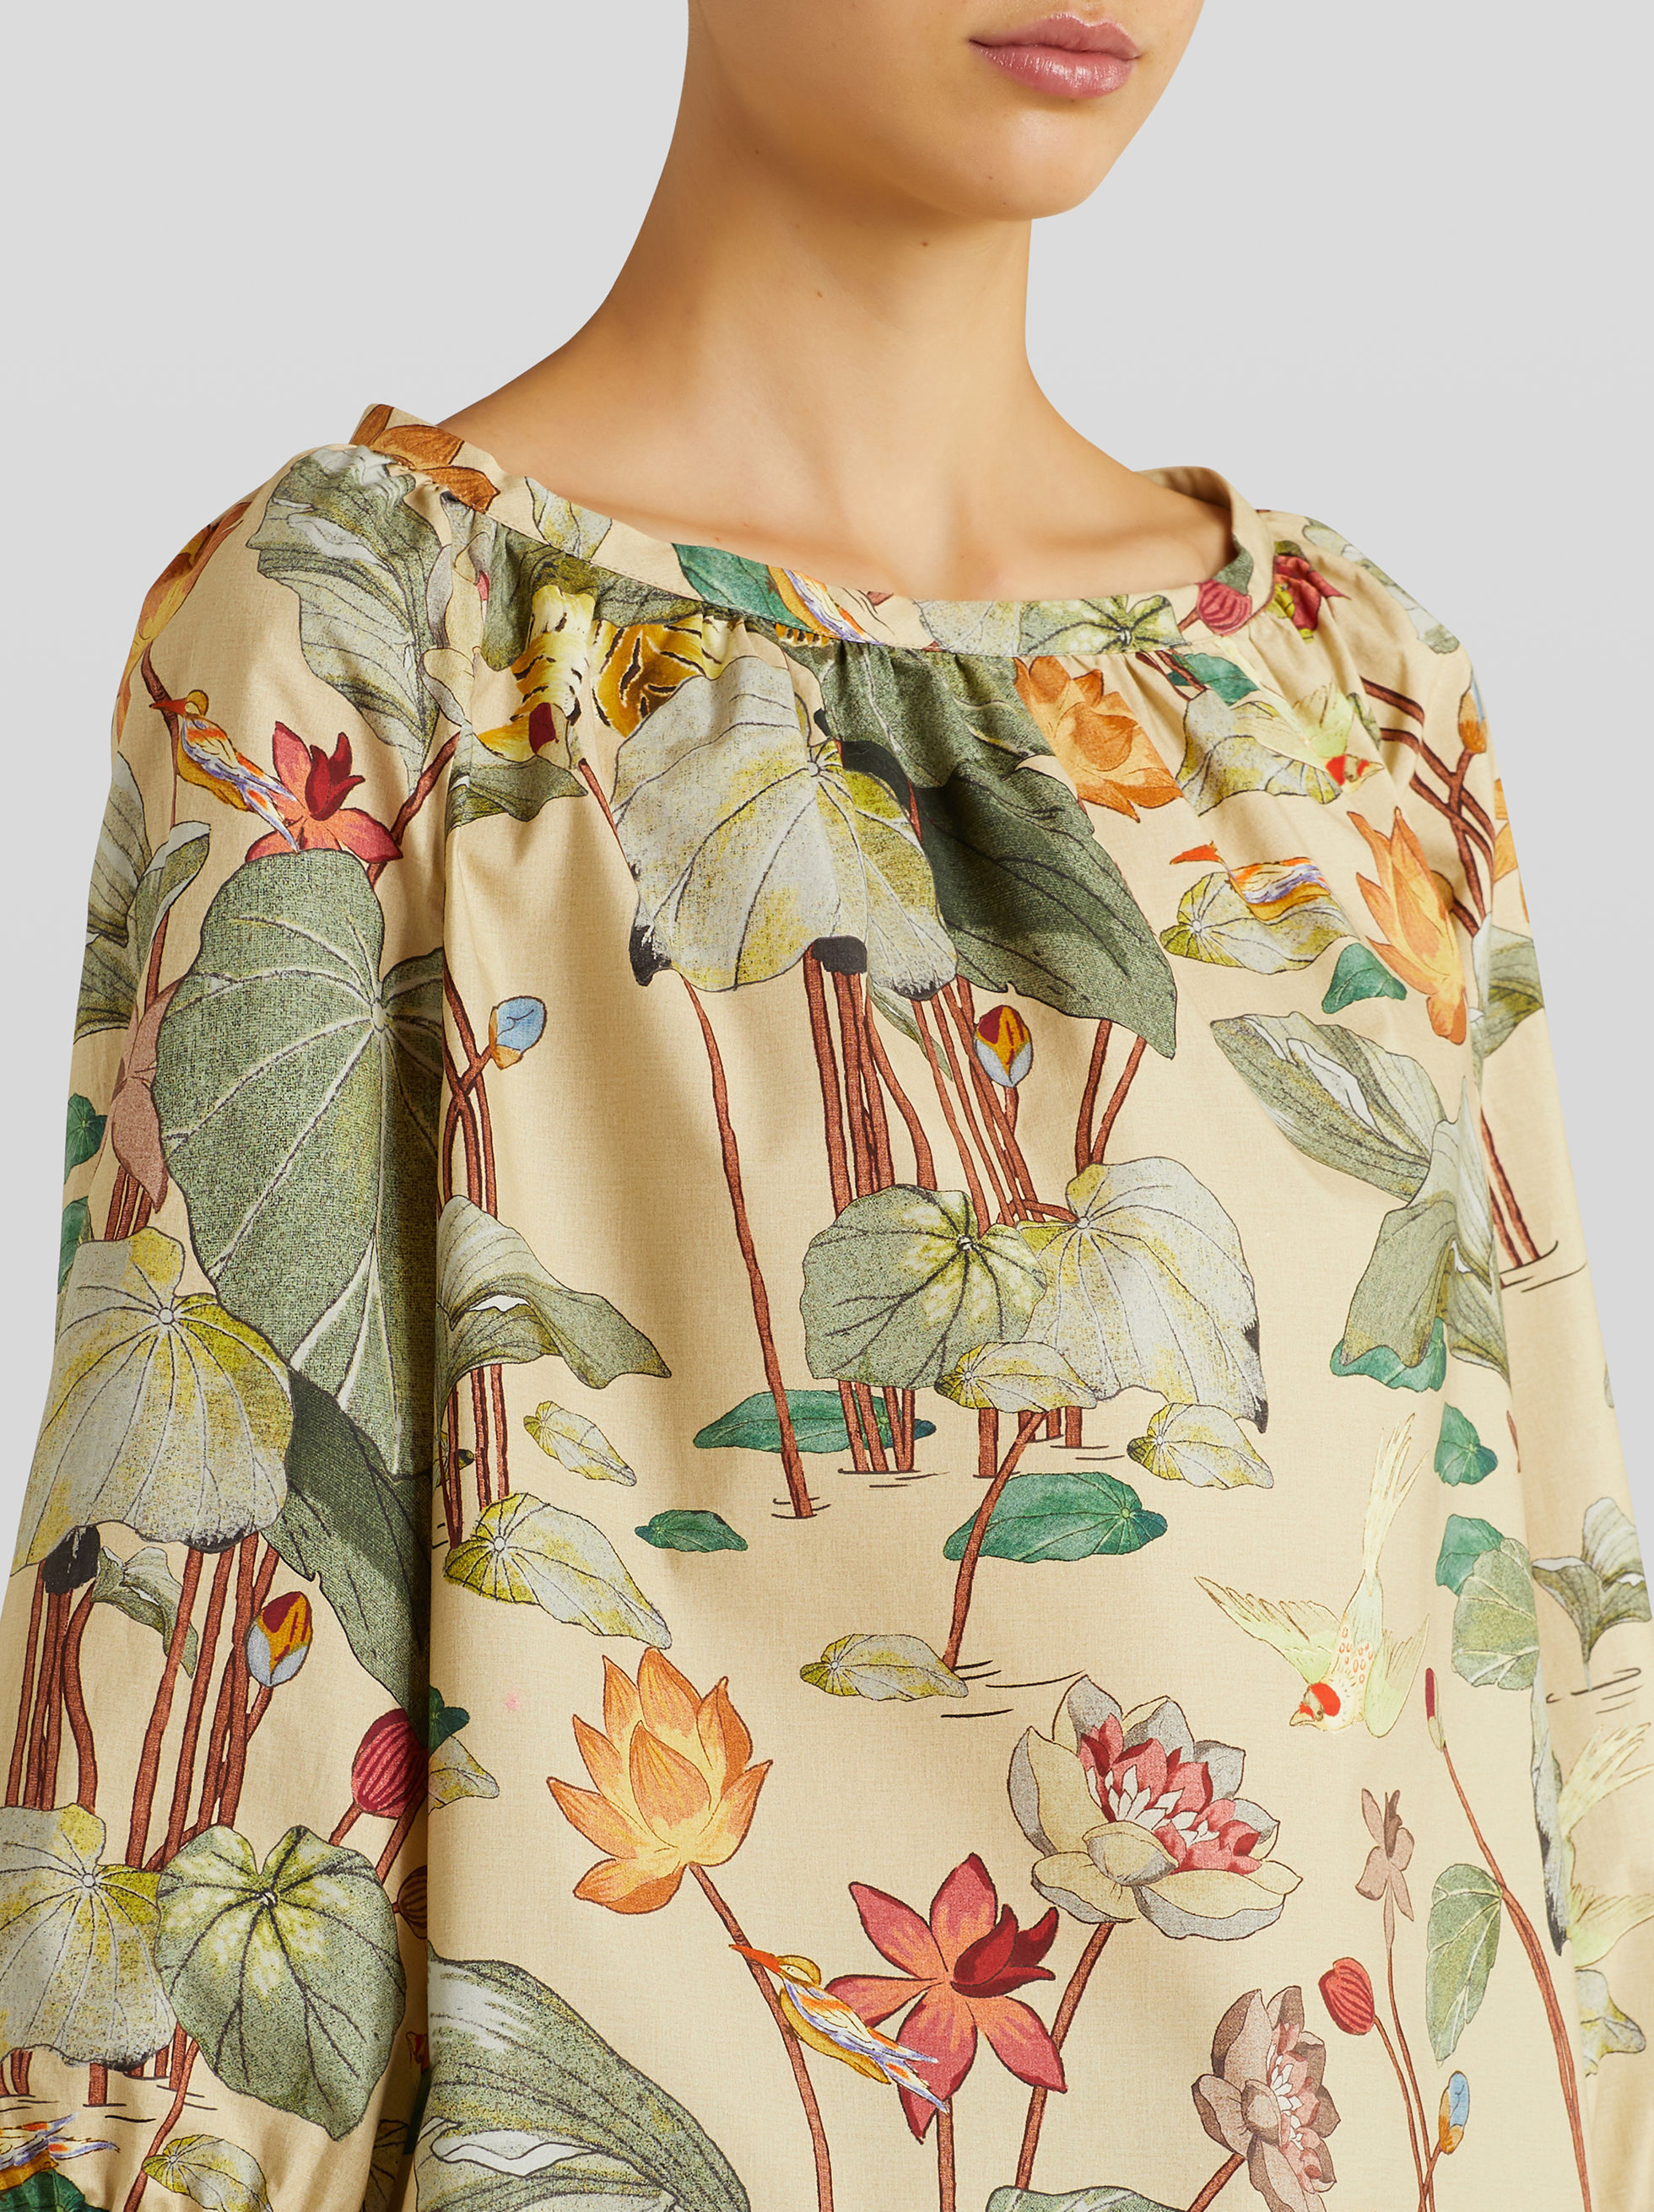 TIGER AND WATER LILY PRINT TOP